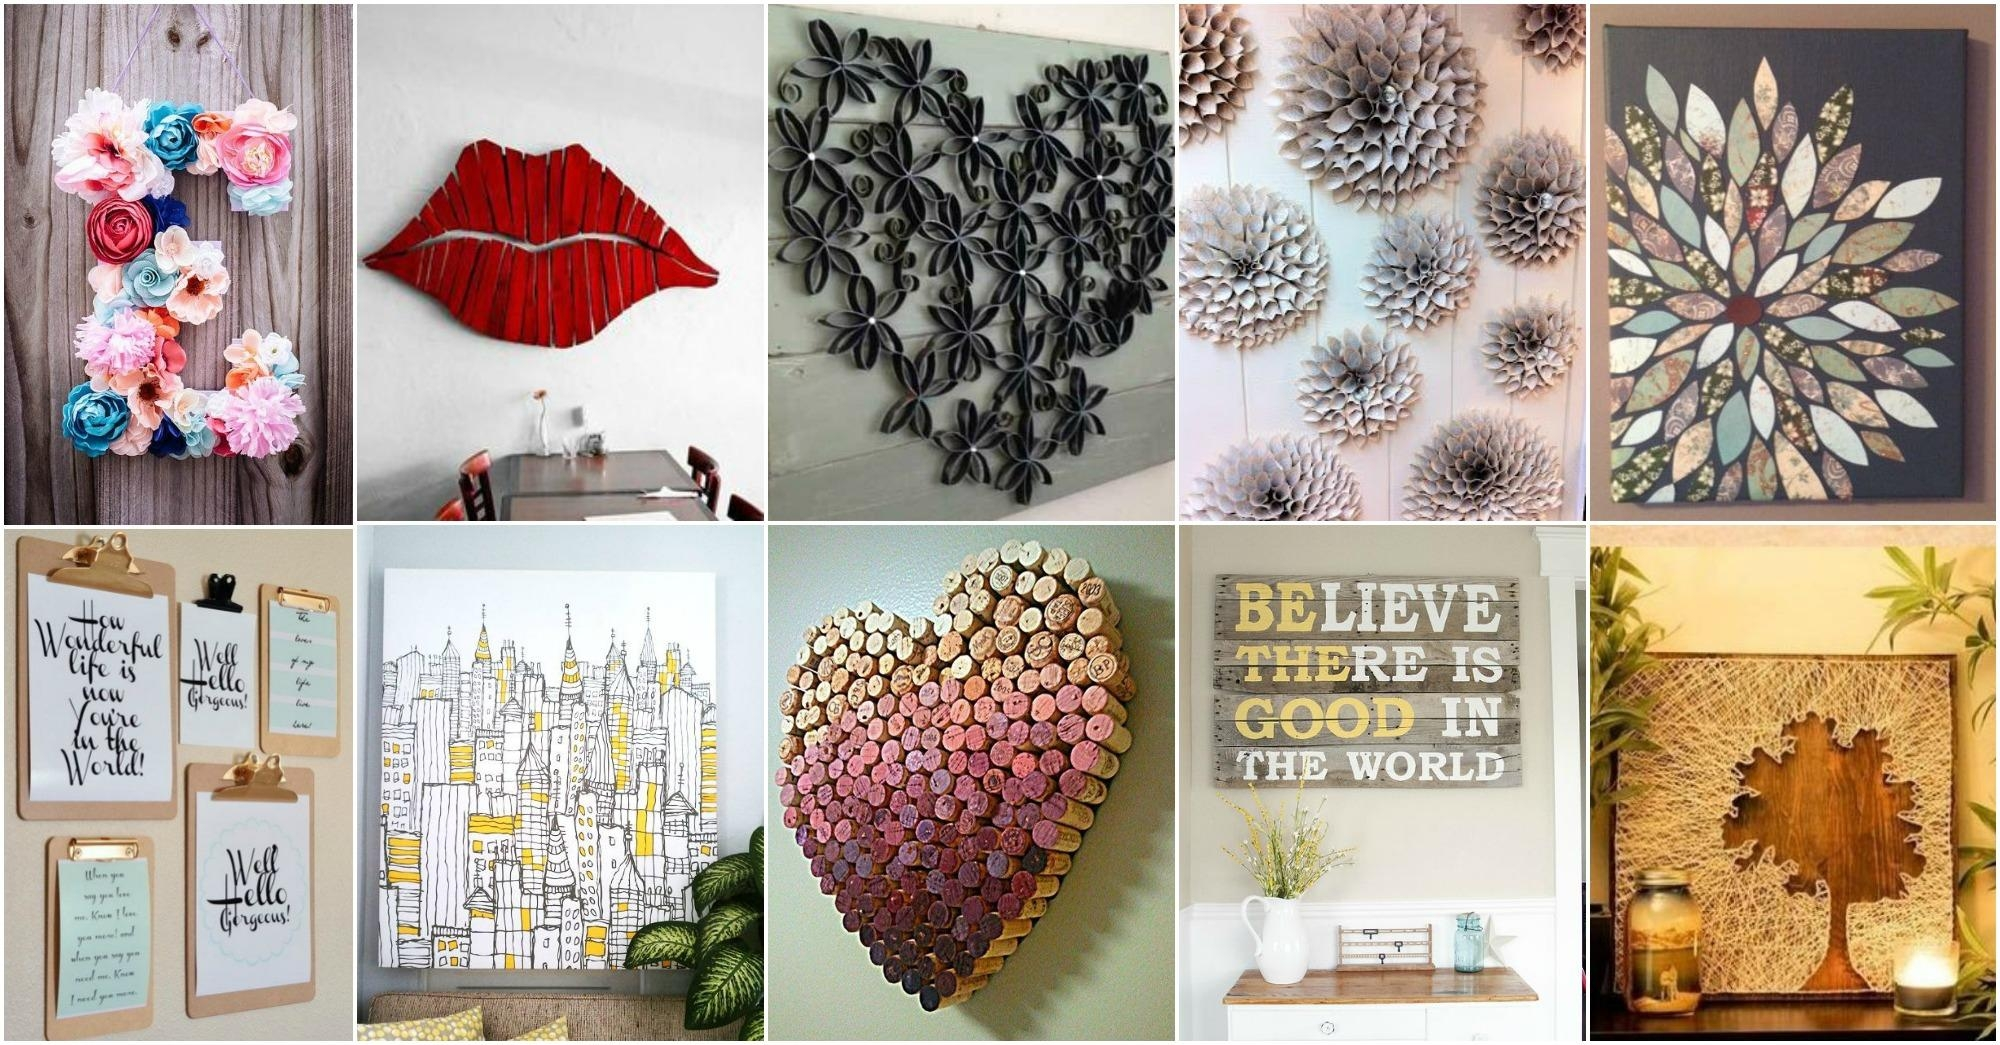 Wall Art: Awesome Canvas Wall Art Ideas Diy Canvas Art Ideas, Cool Pertaining To Pinterest Diy Wall Art (View 12 of 20)